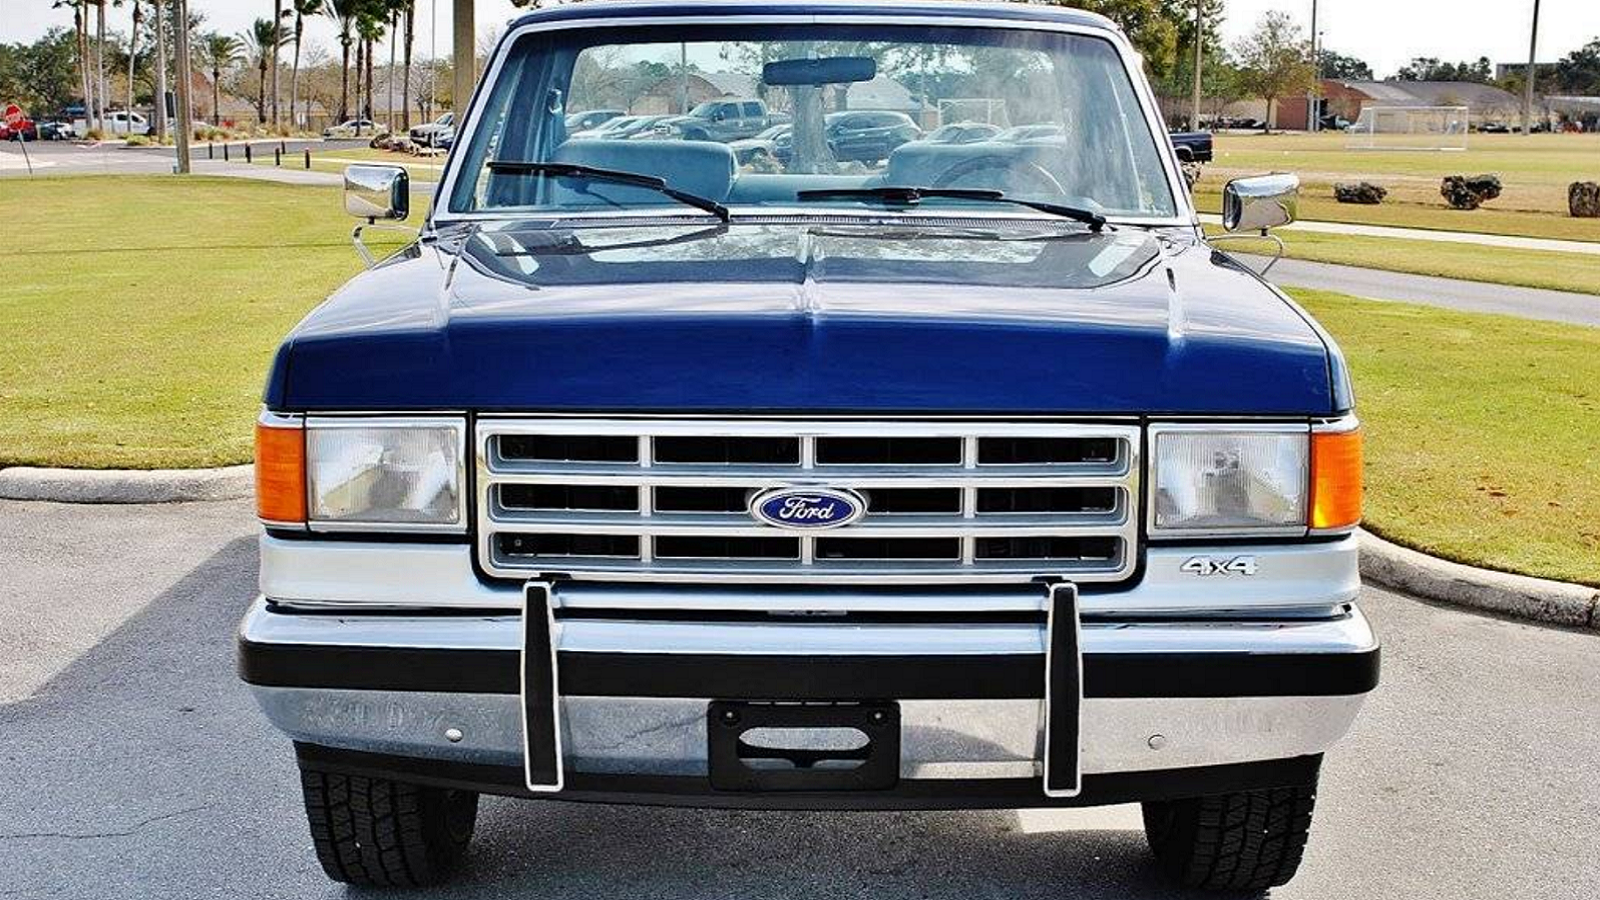 Low-Mile 1988 Ford F-150 Is a Flat-Nosed Find